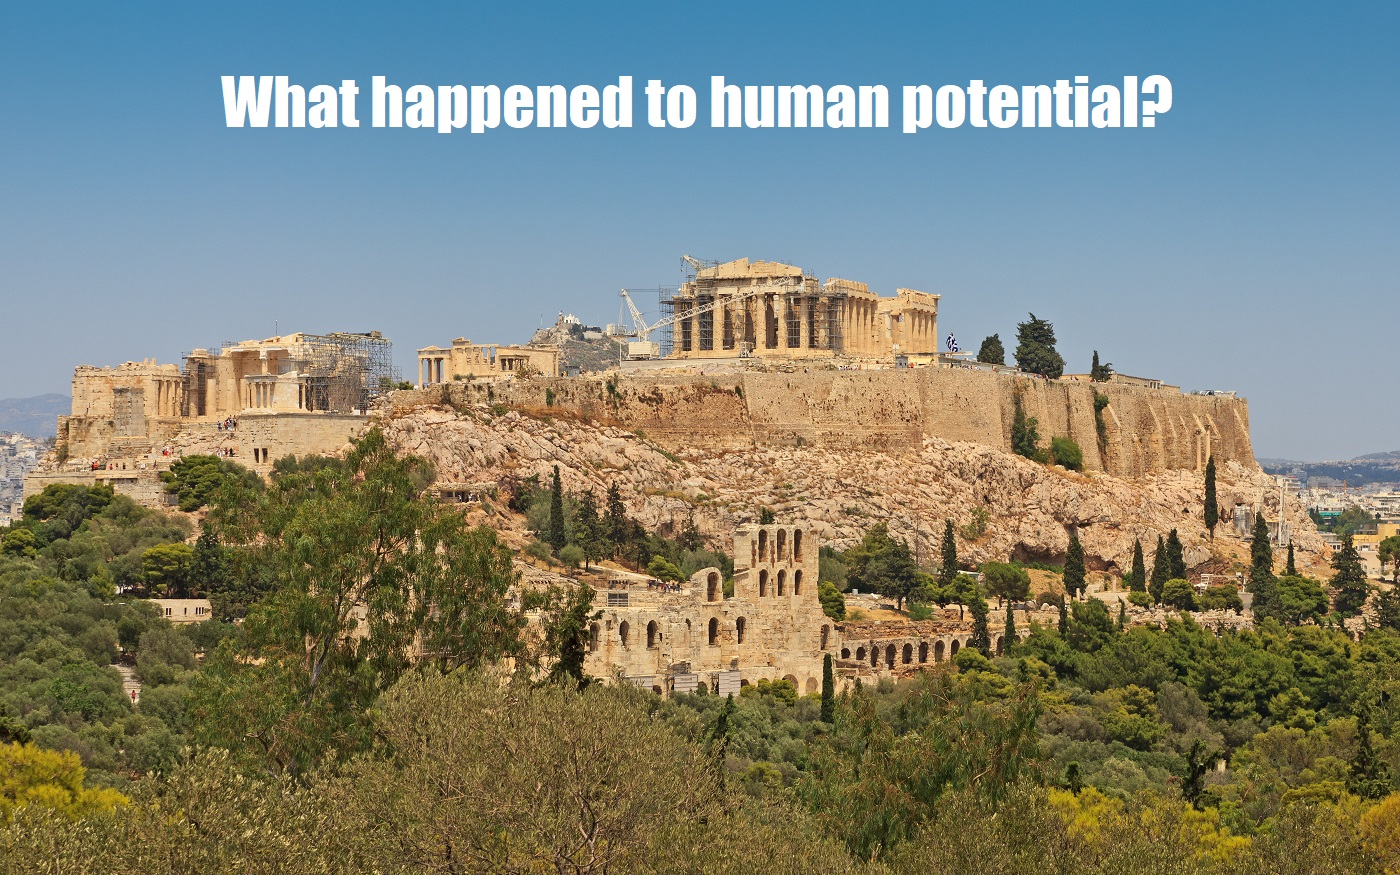 What happened to human potential?